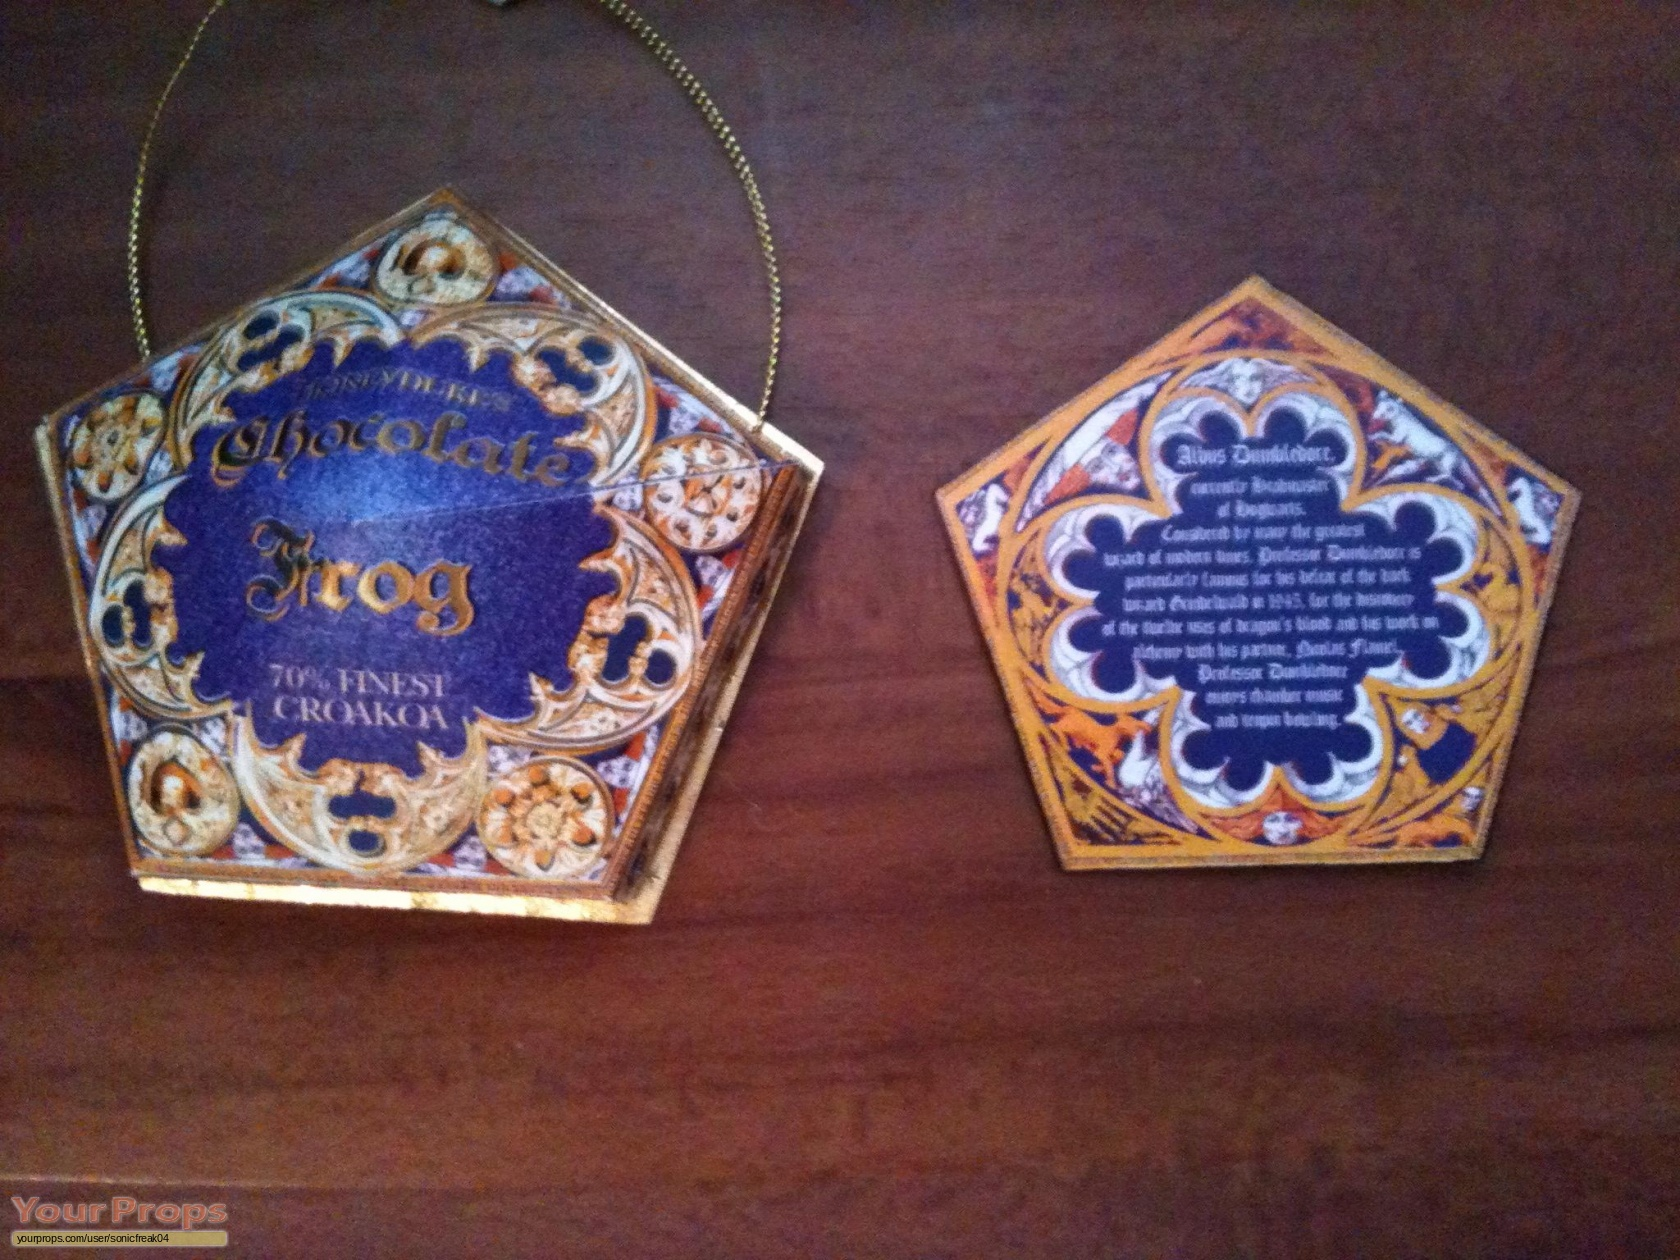 Harry Potter movies chocolate frog box and card replica movie prop